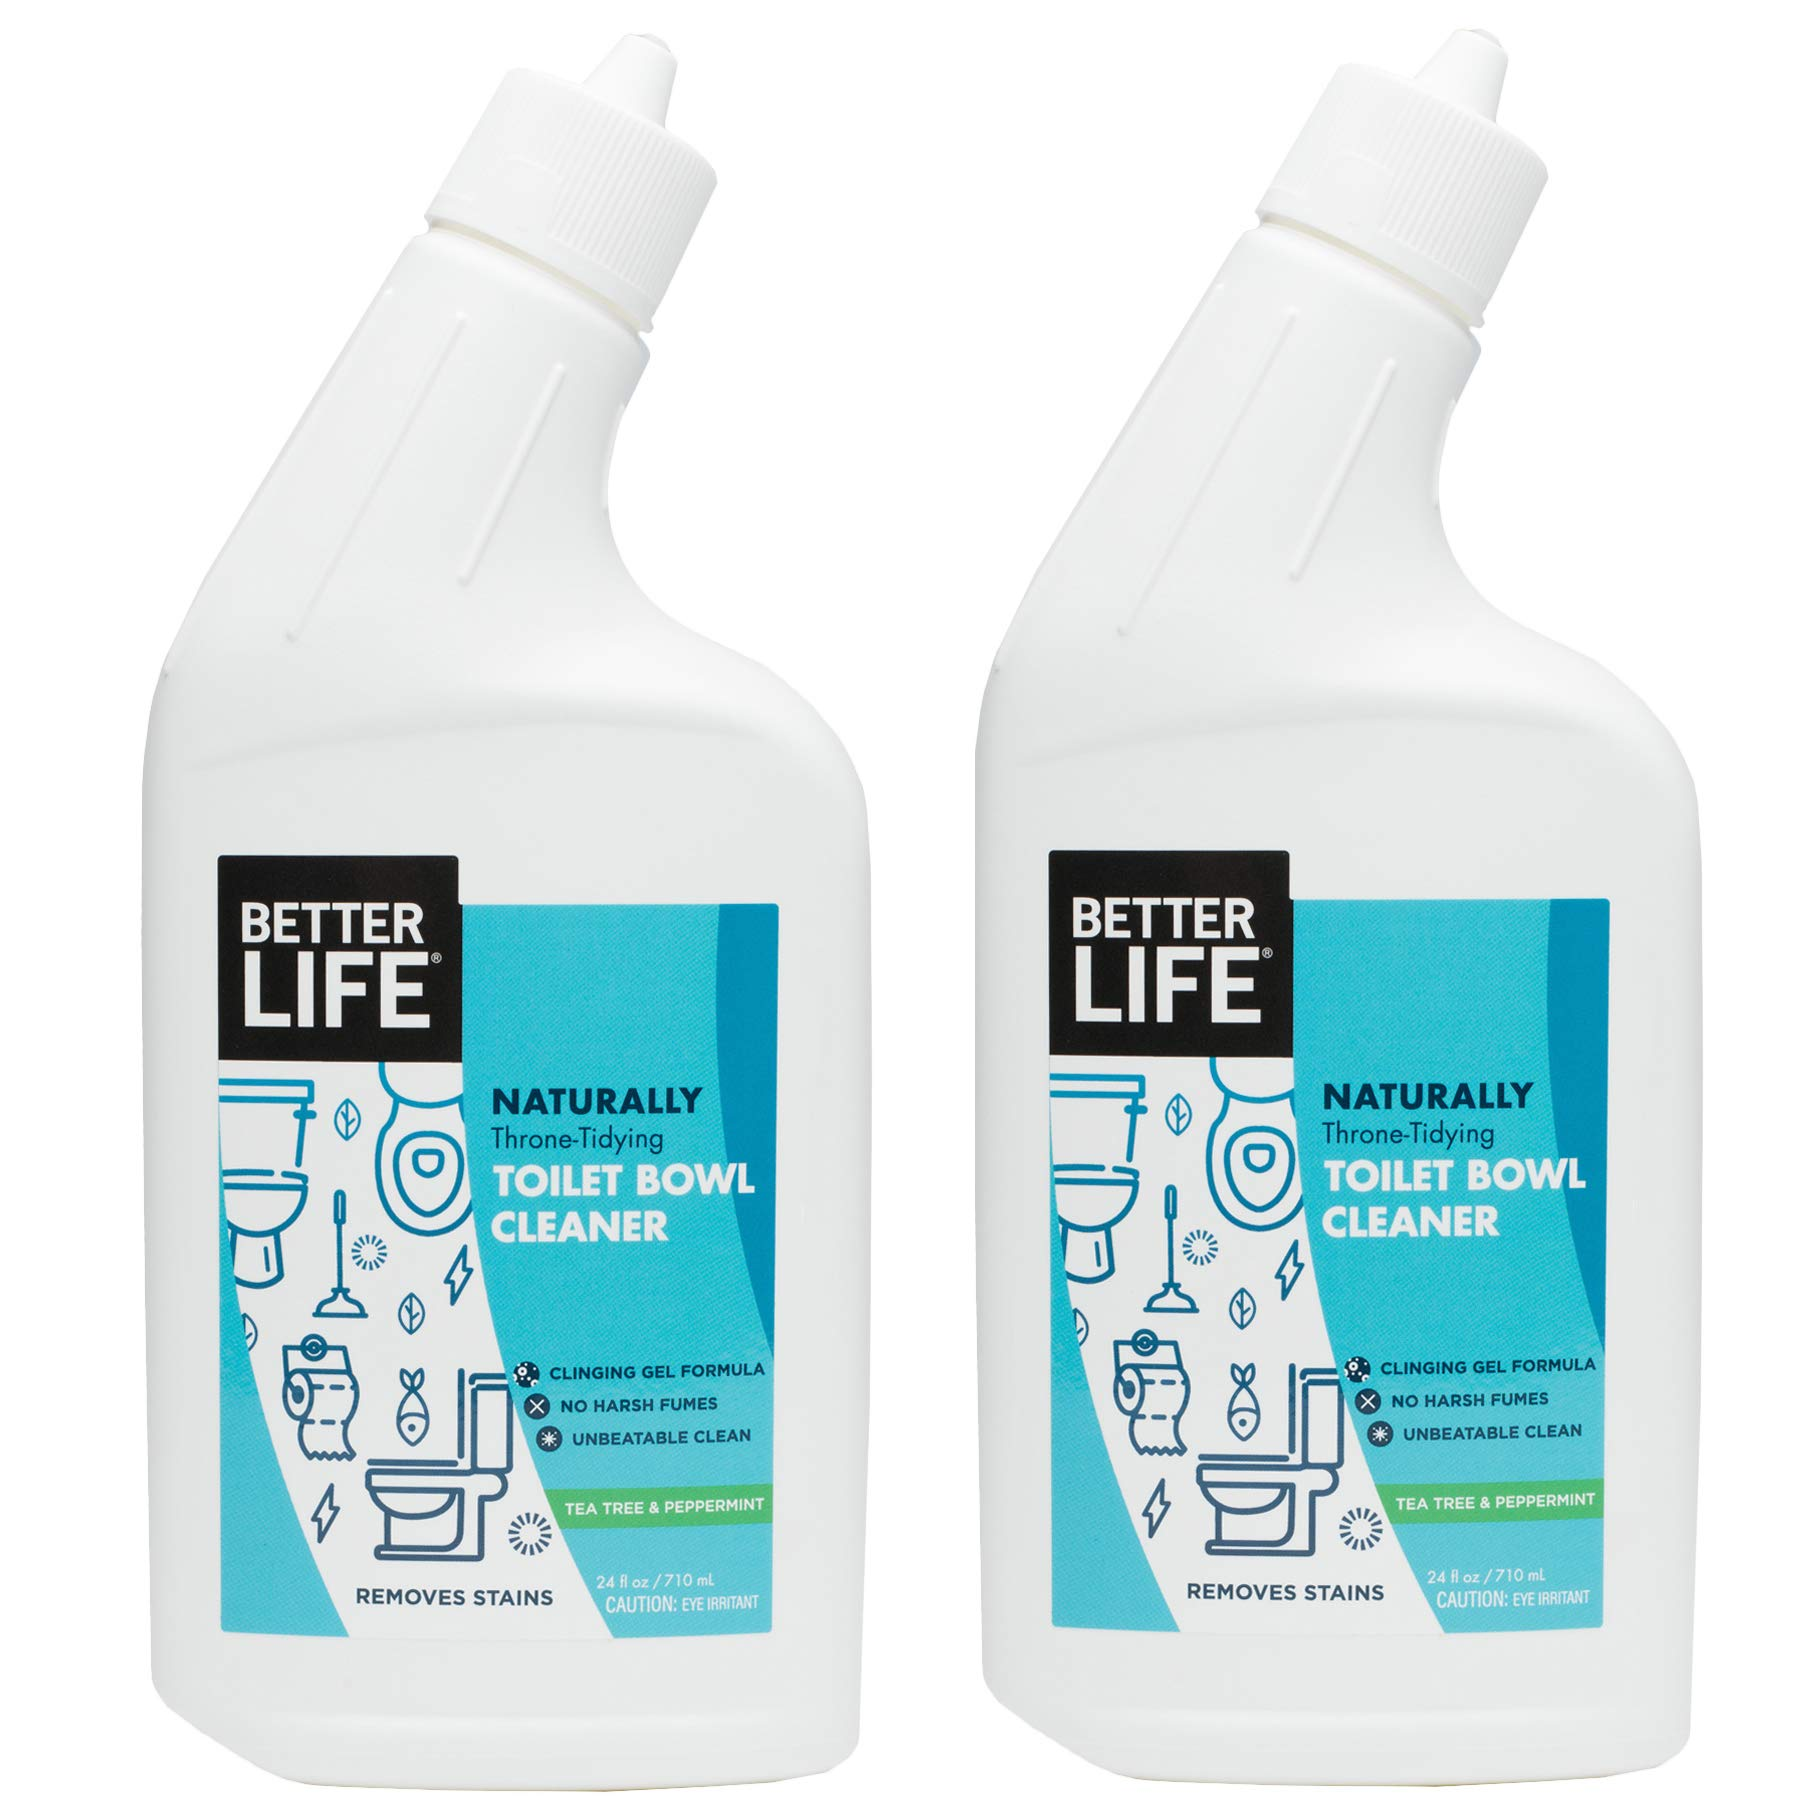 Better Life Natural Toilet Bowl Cleaner, 24 Ounce (Pack of 2) Tea Tree & Peppermint Scent by Better Life